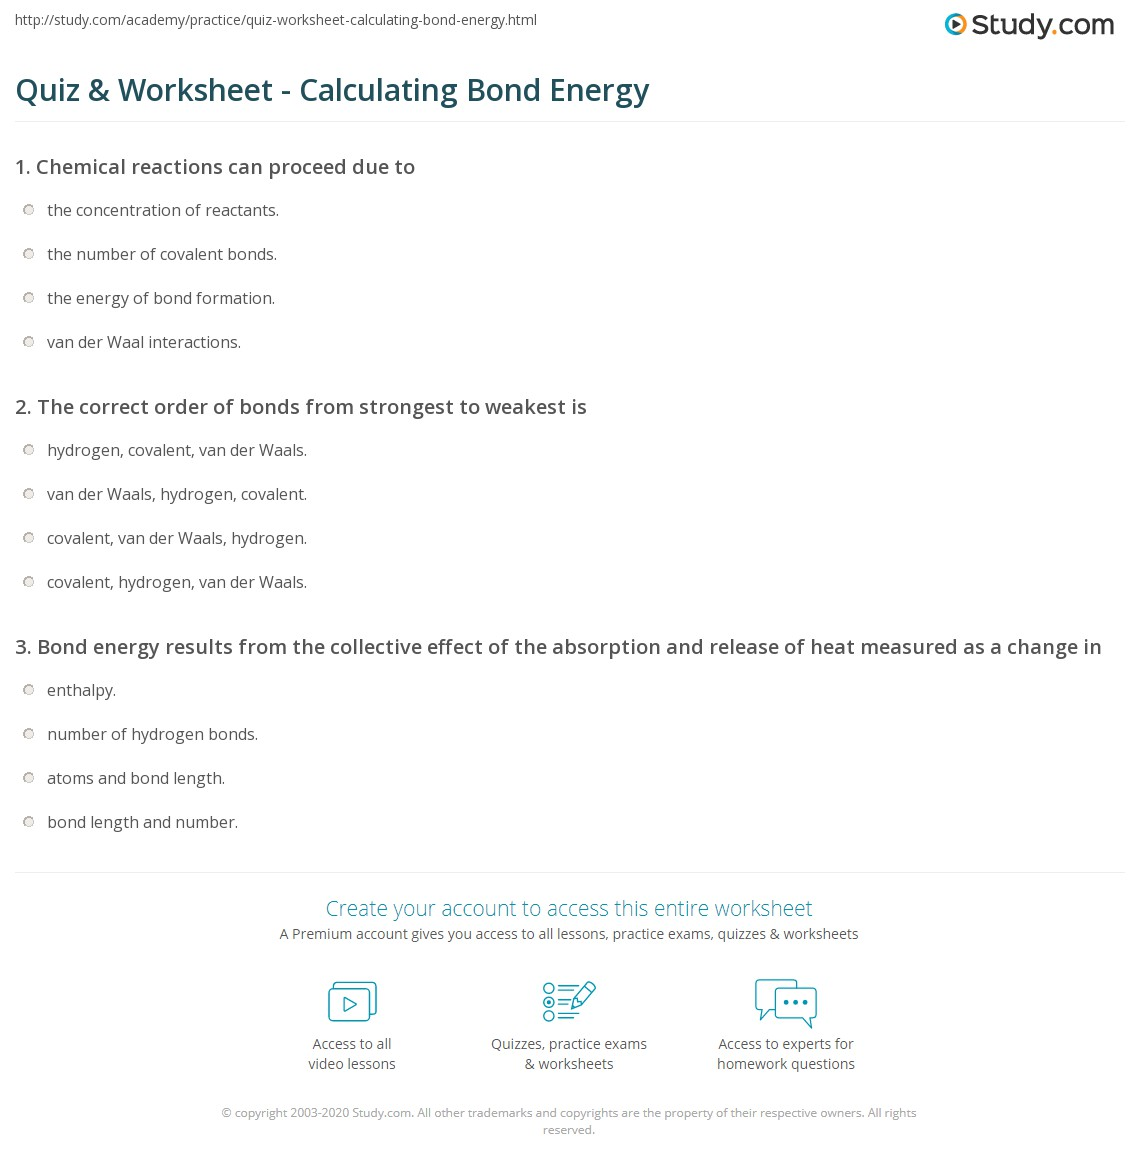 Quiz & Worksheet - Calculating Bond Energy | Study.com